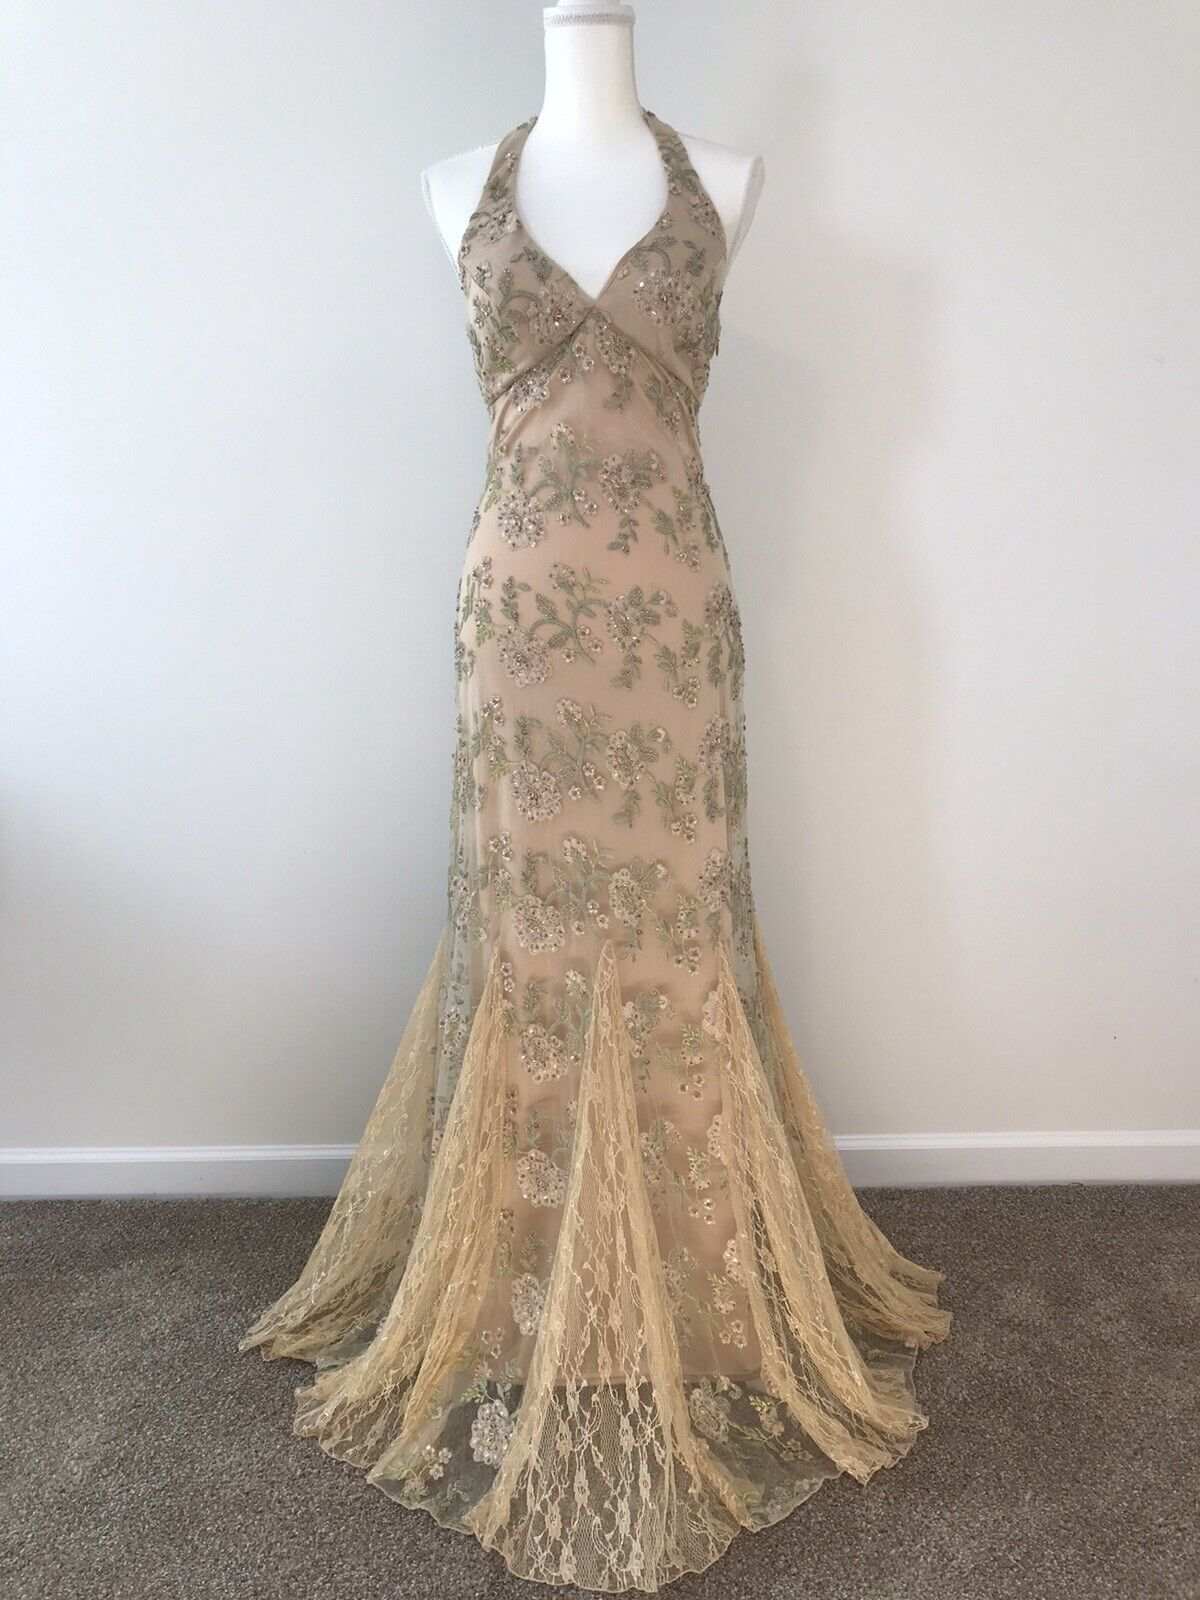 New Sue Wong Size 4 Champagne Hand Beaded Gown And Shawl.